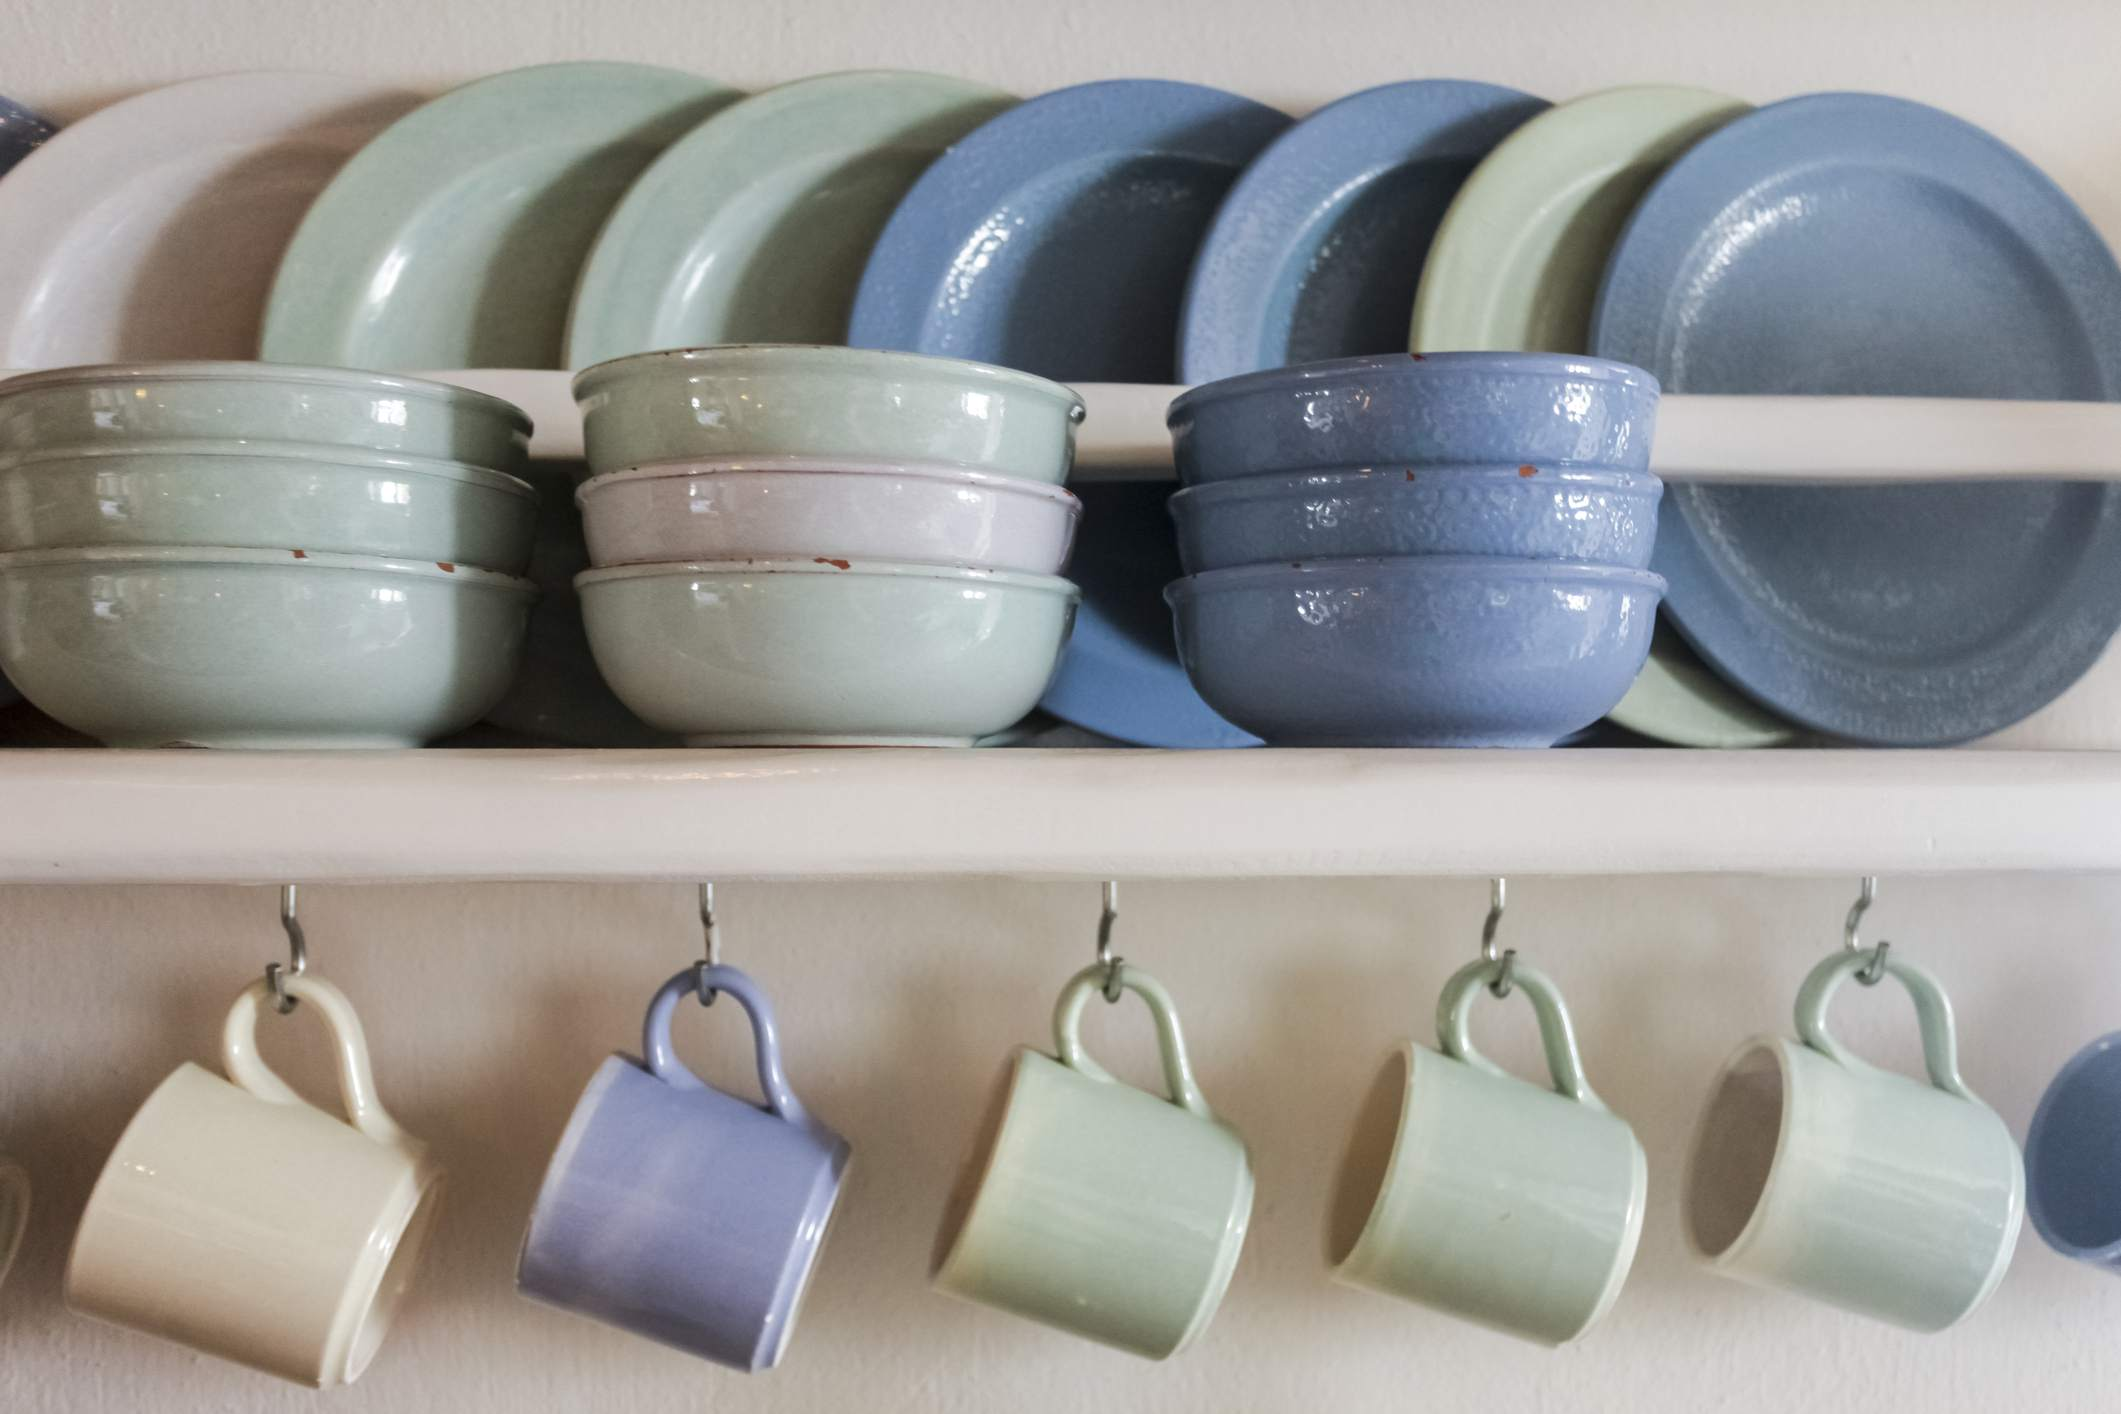 Blue and green clay plates, bowls, and coffee cups on shelf